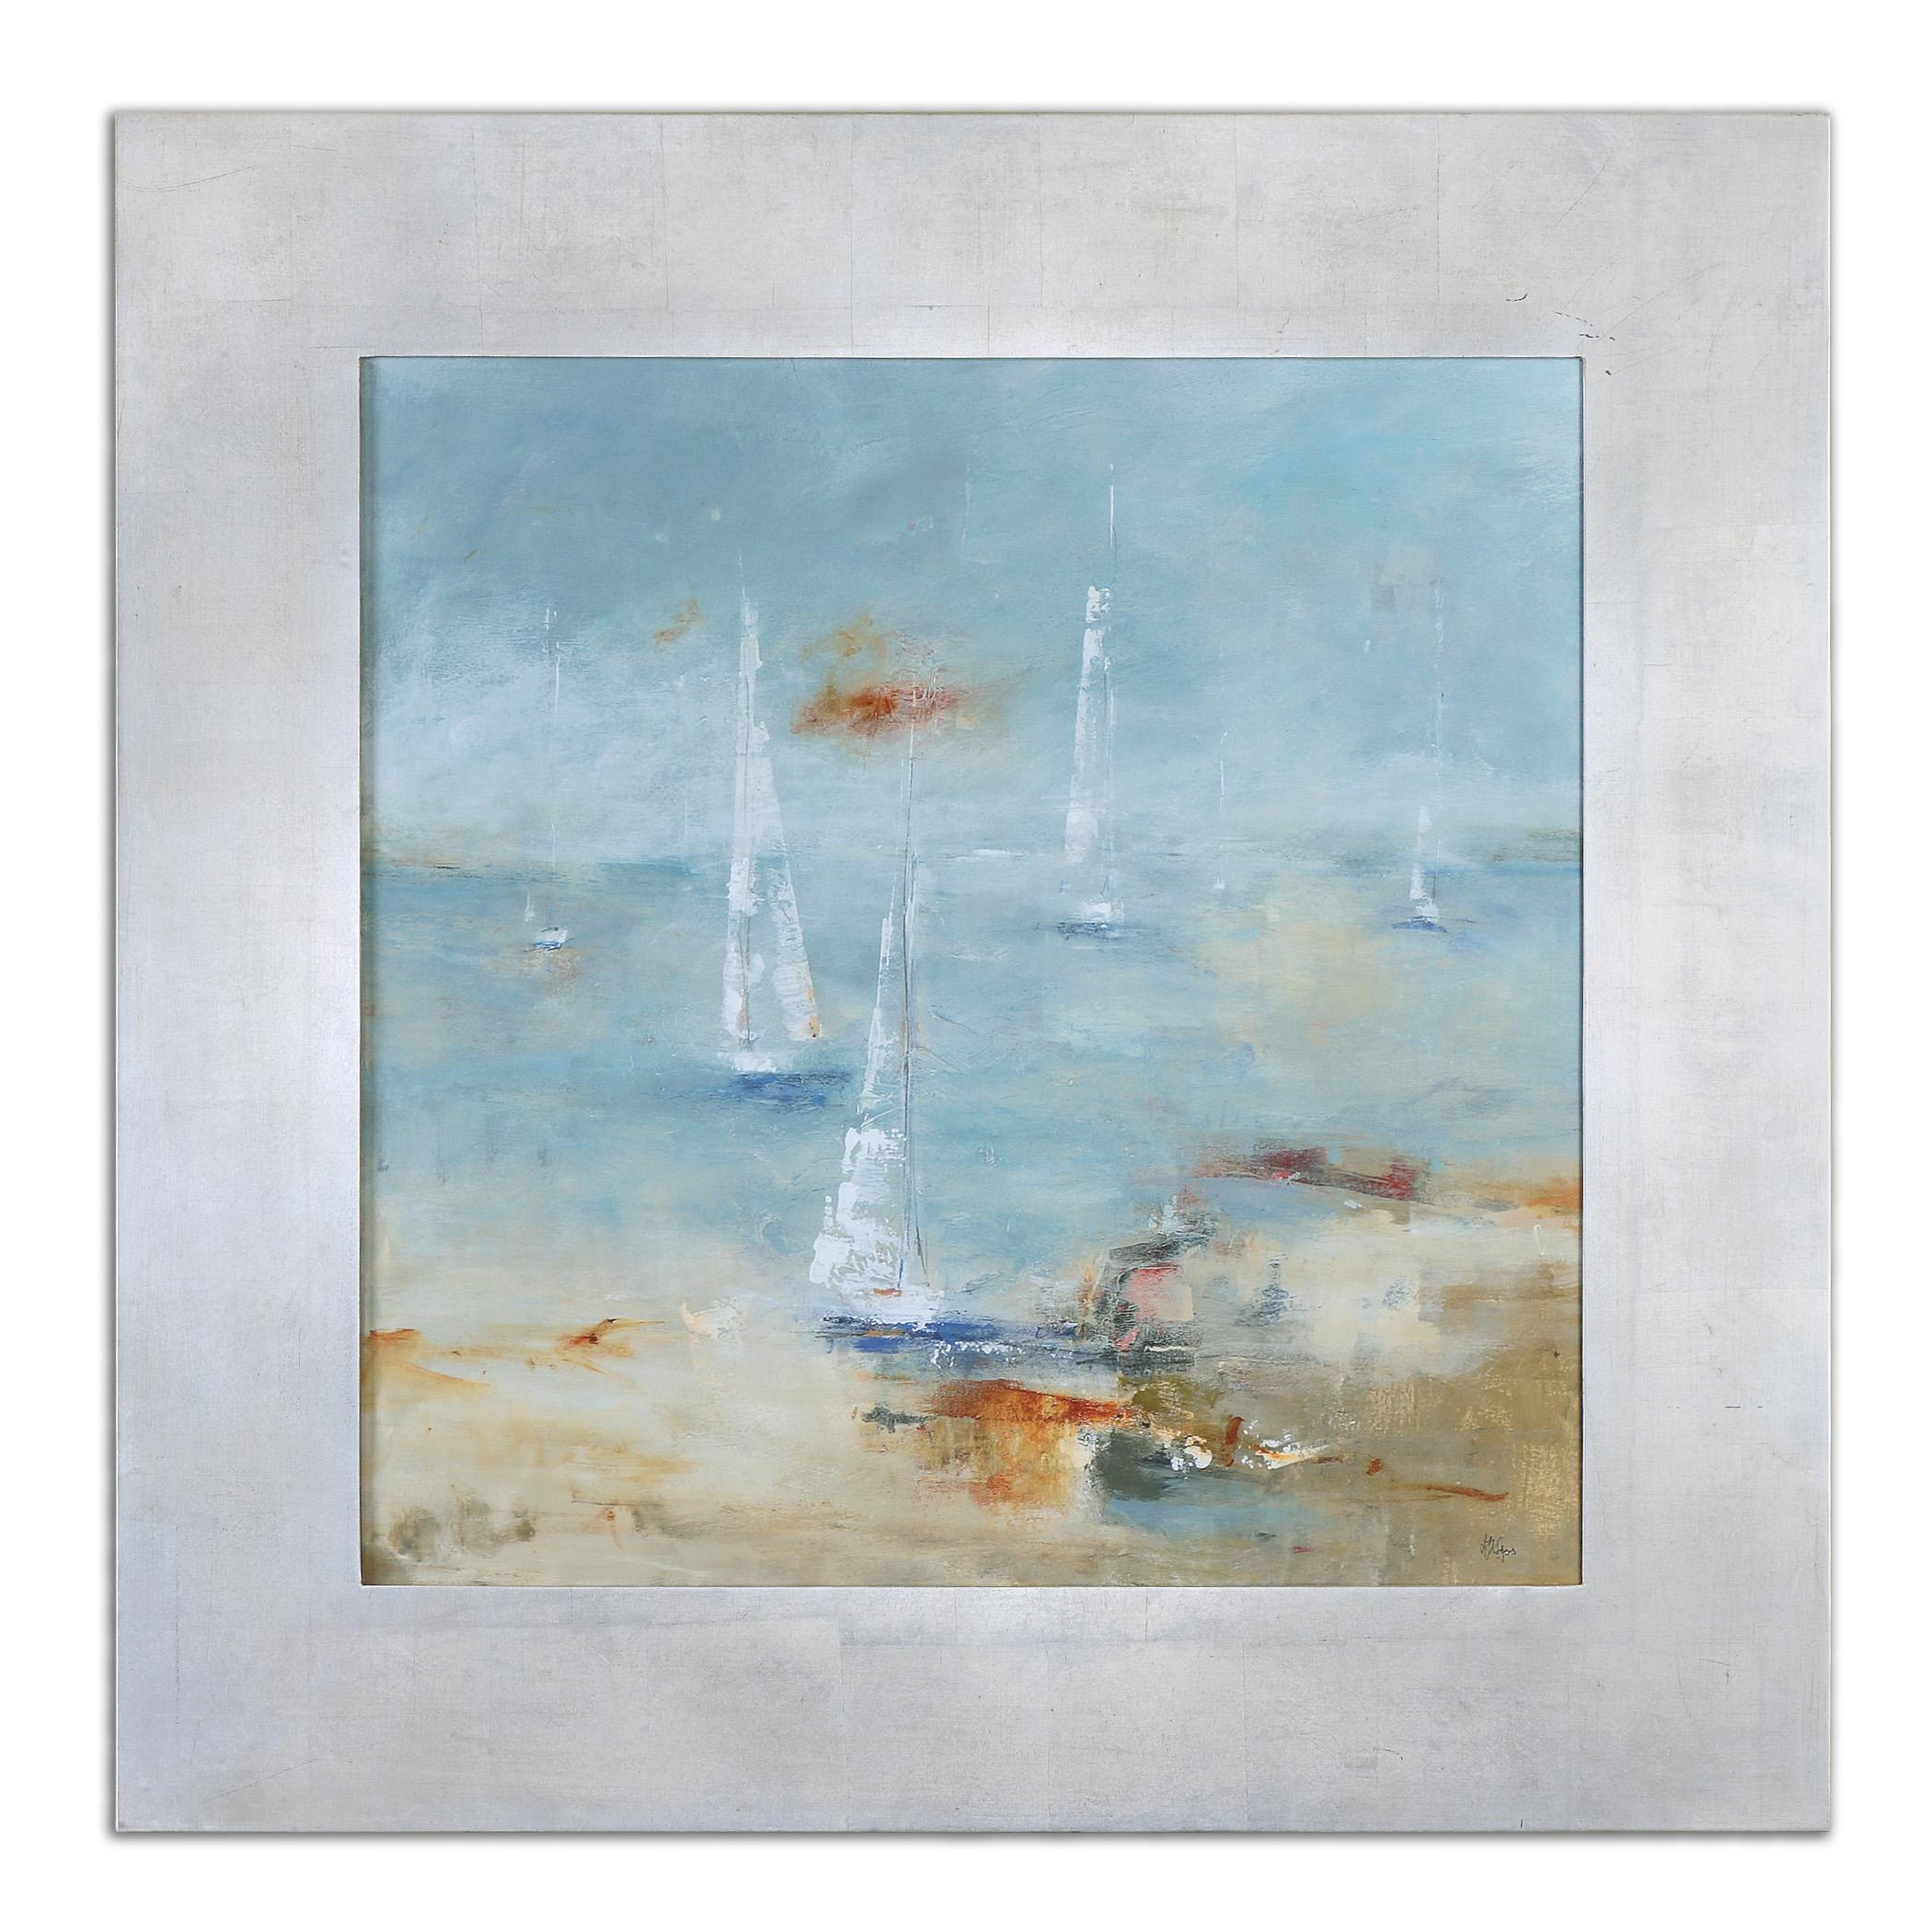 Uttermost Art Sail Time Framed Art - Item Number: 41533